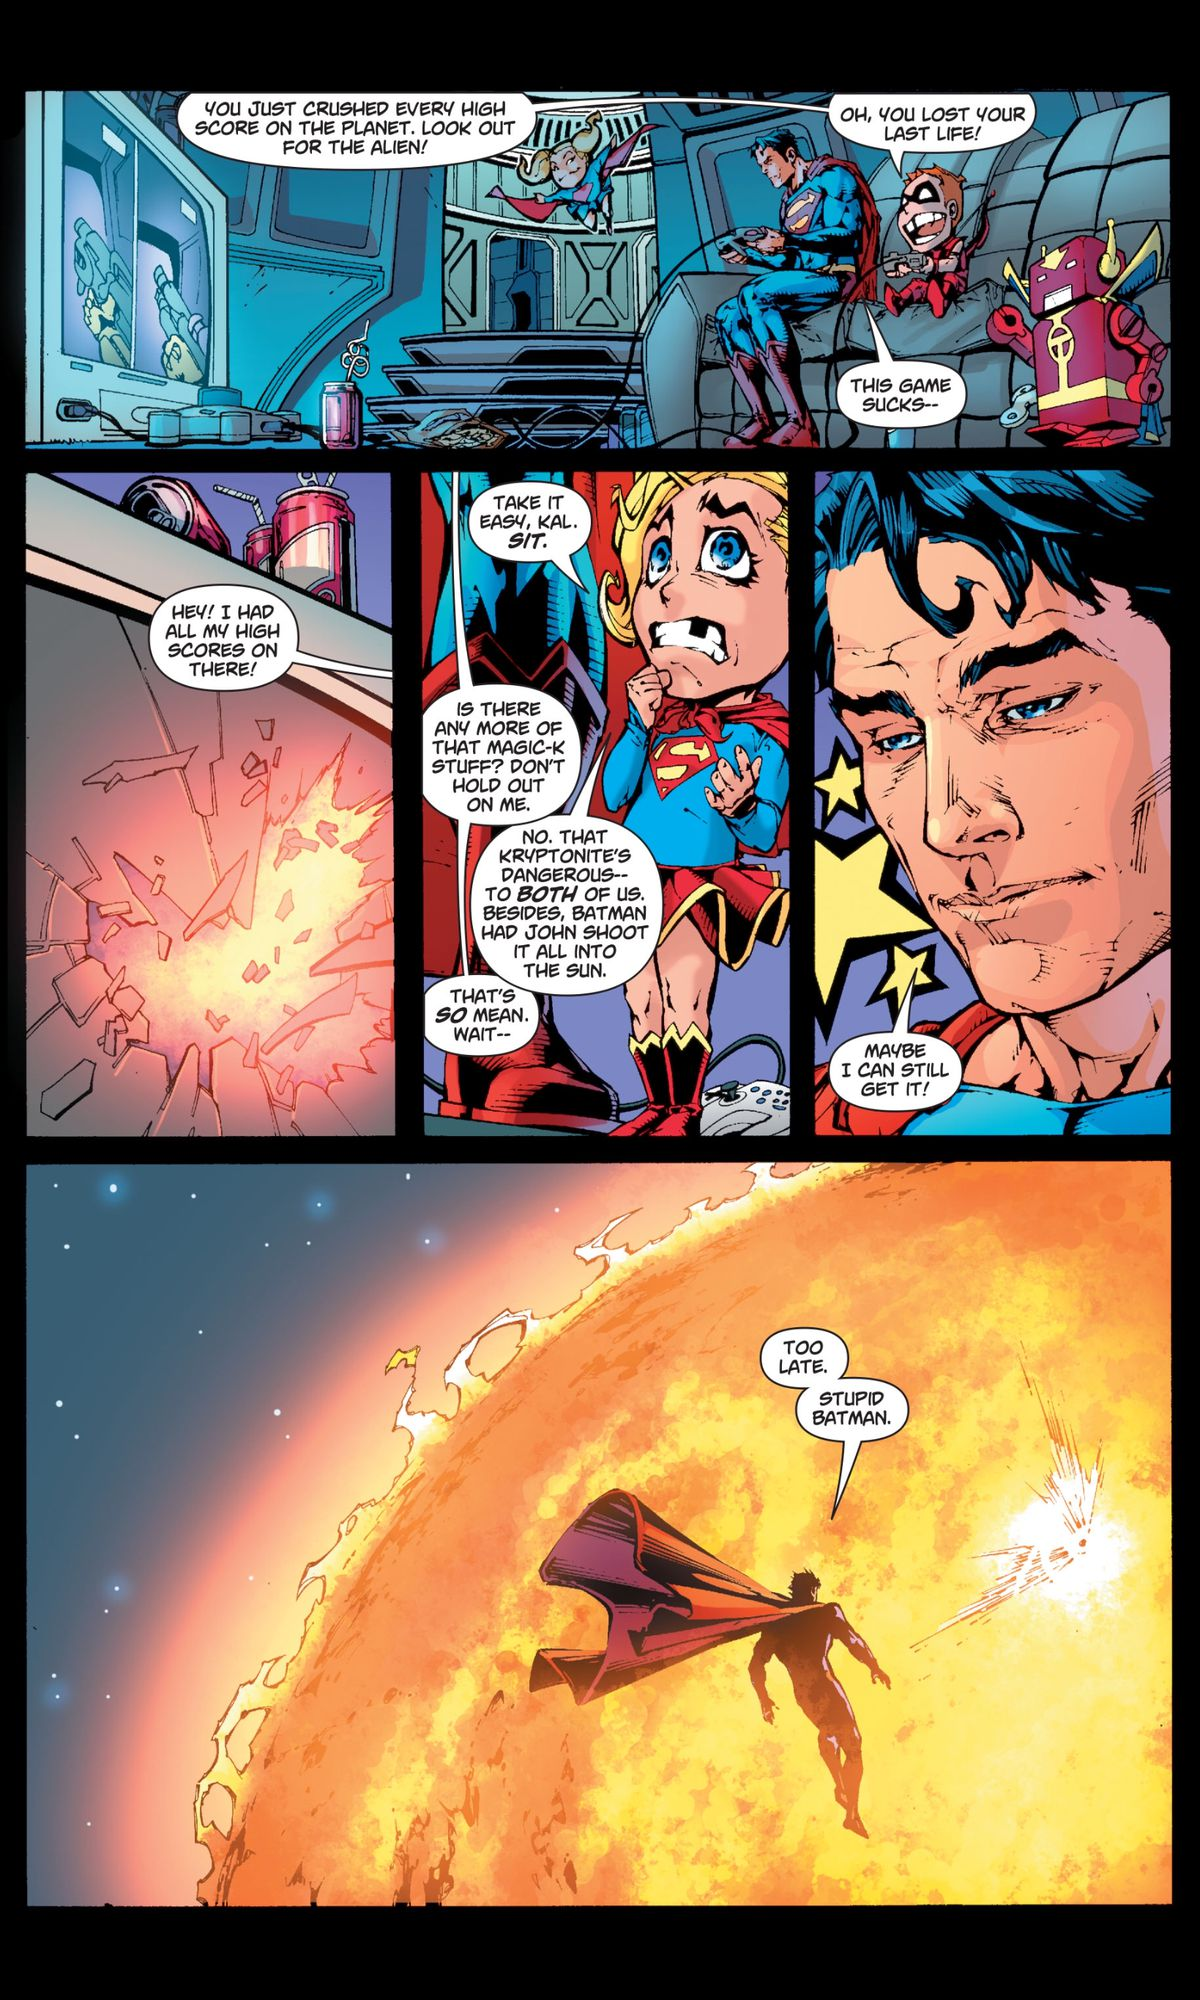 Under the effect of magic kryptonite, Superman beats all the high scores on the video games in the Justice League Watchtower, and then is disappointed when there's no more magic kryptonite, in Superman/Batman #46, DC Comics (2008).